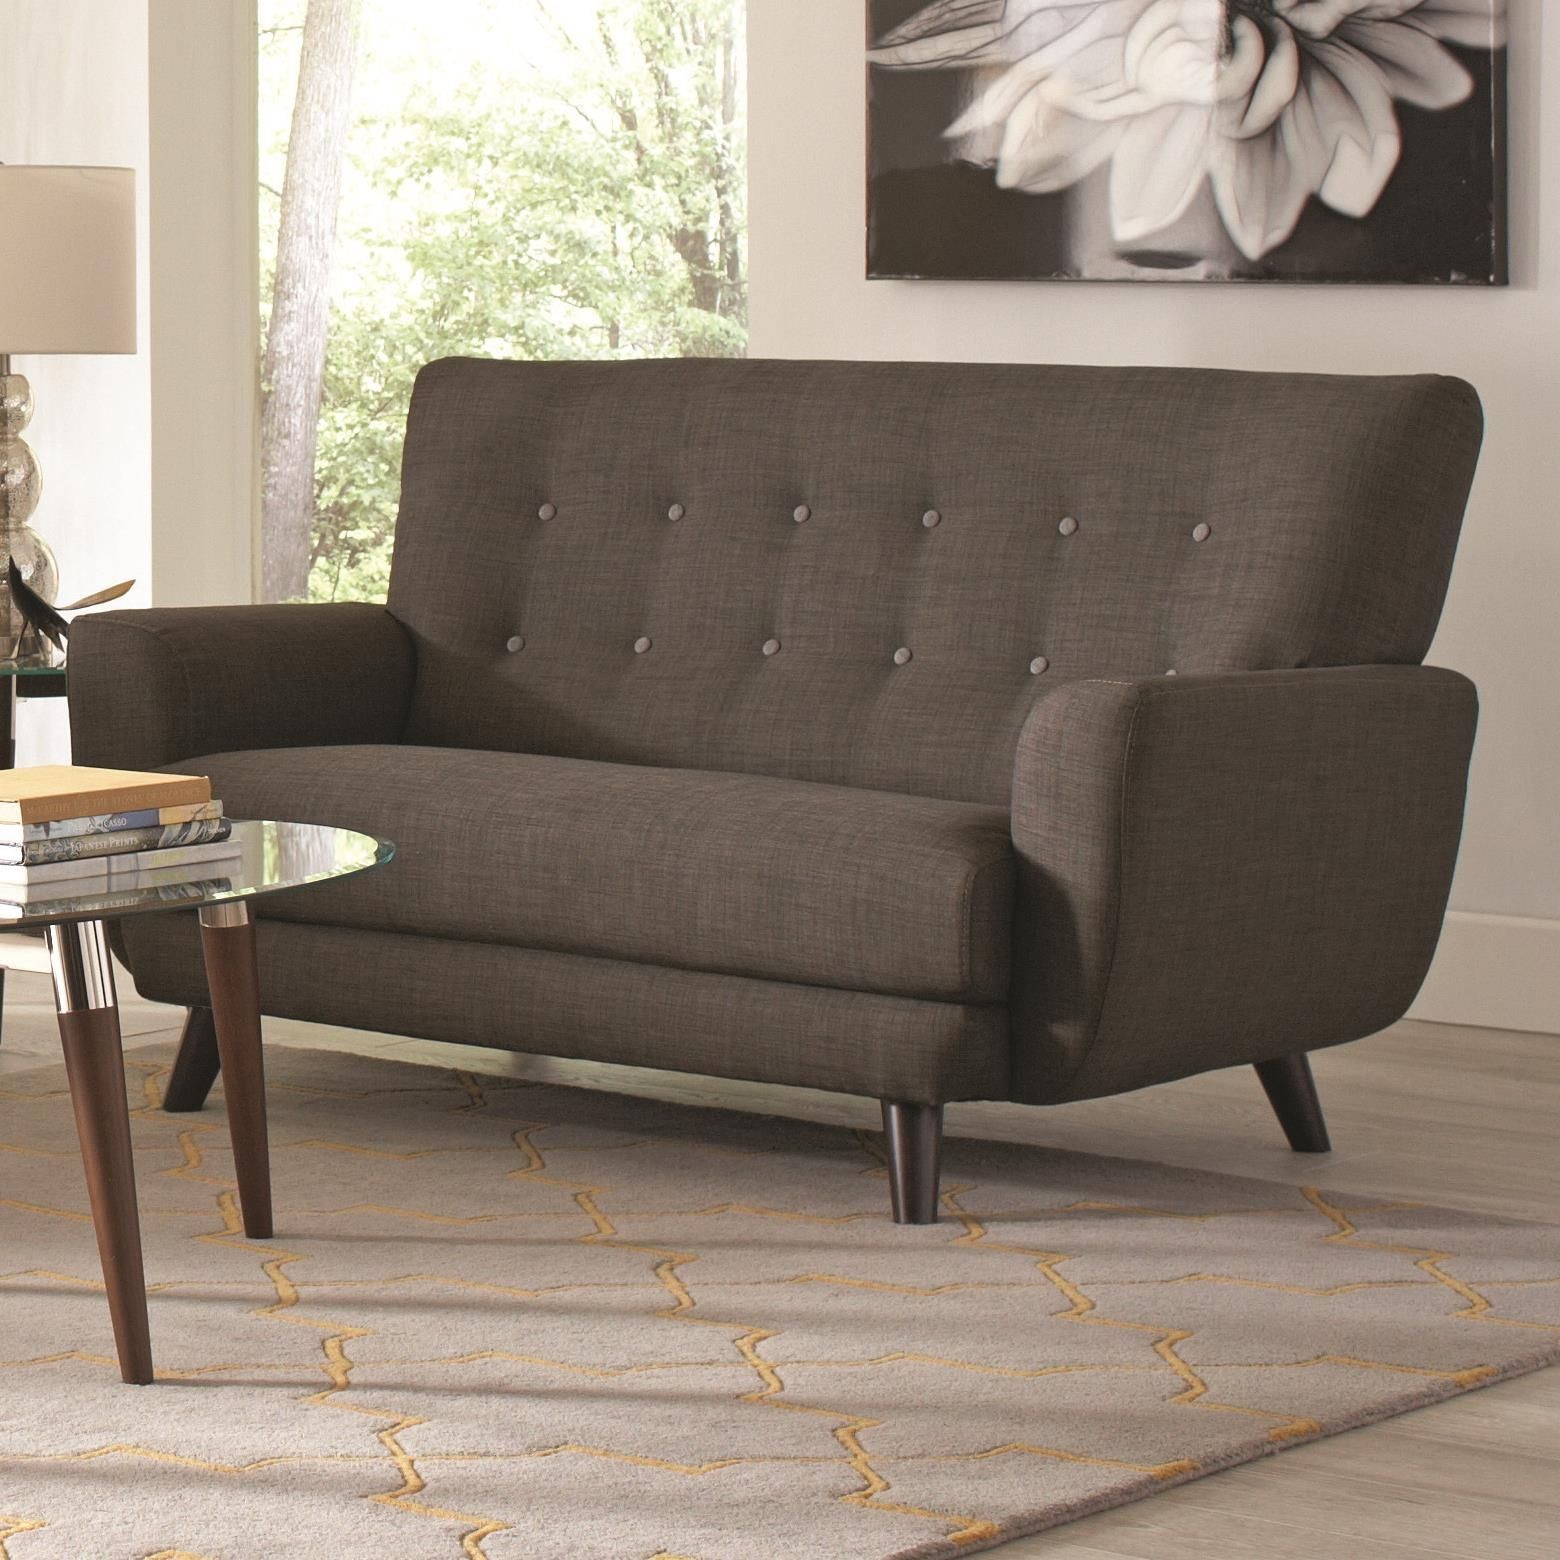 Maguire Charcoal Loveseat From Coaster 504775 Coleman Furniture